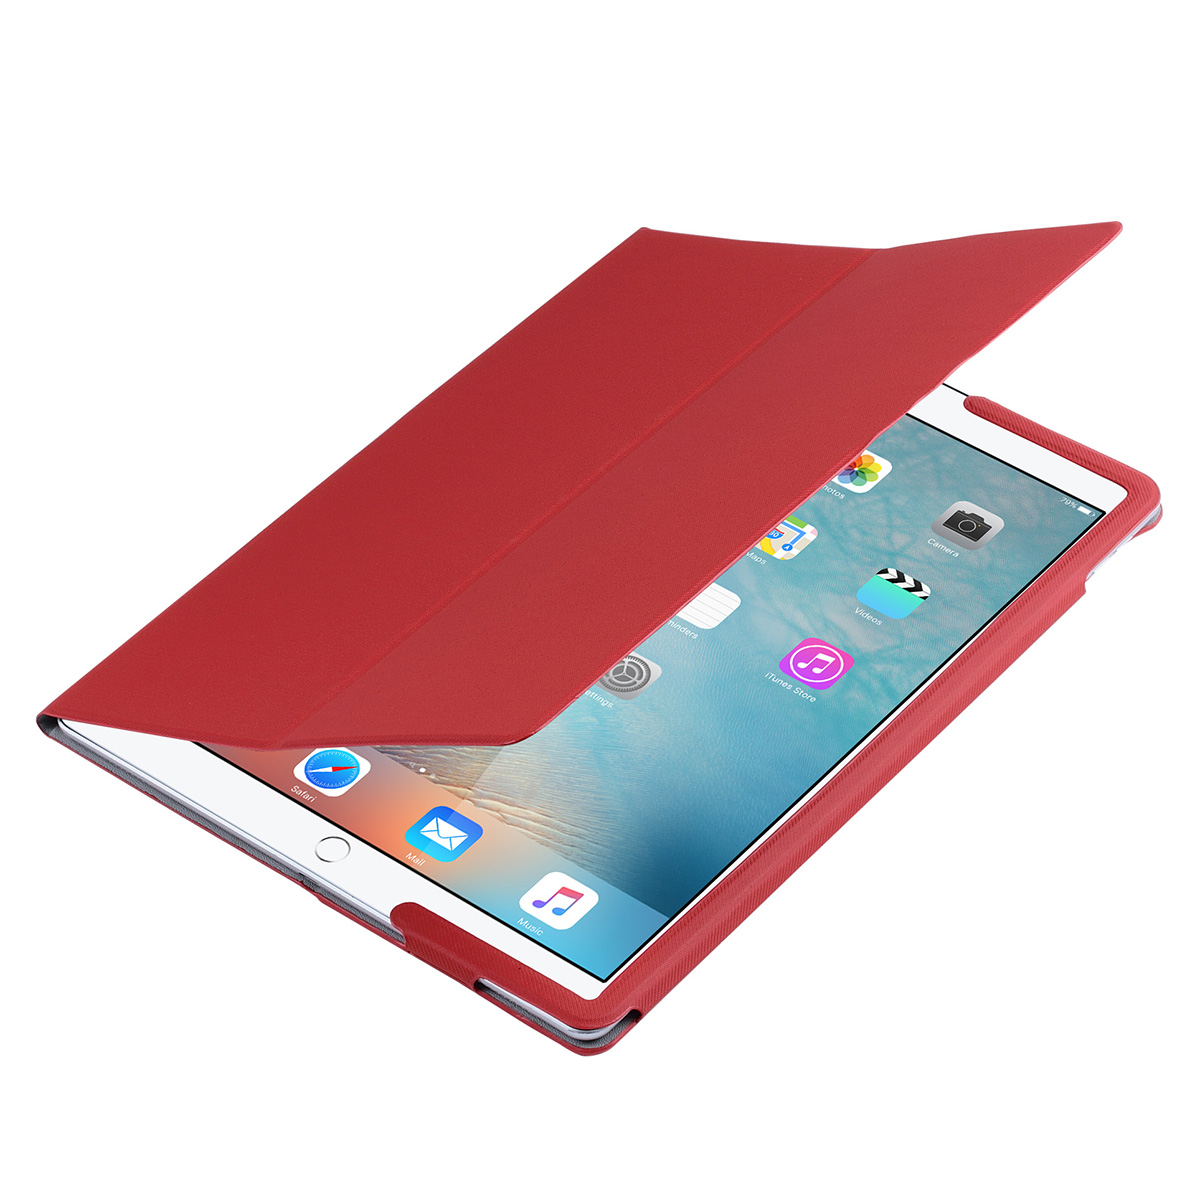 premium slim pu leather stand case smart cover for apple ipad pro 12 9 2015 ebay. Black Bedroom Furniture Sets. Home Design Ideas